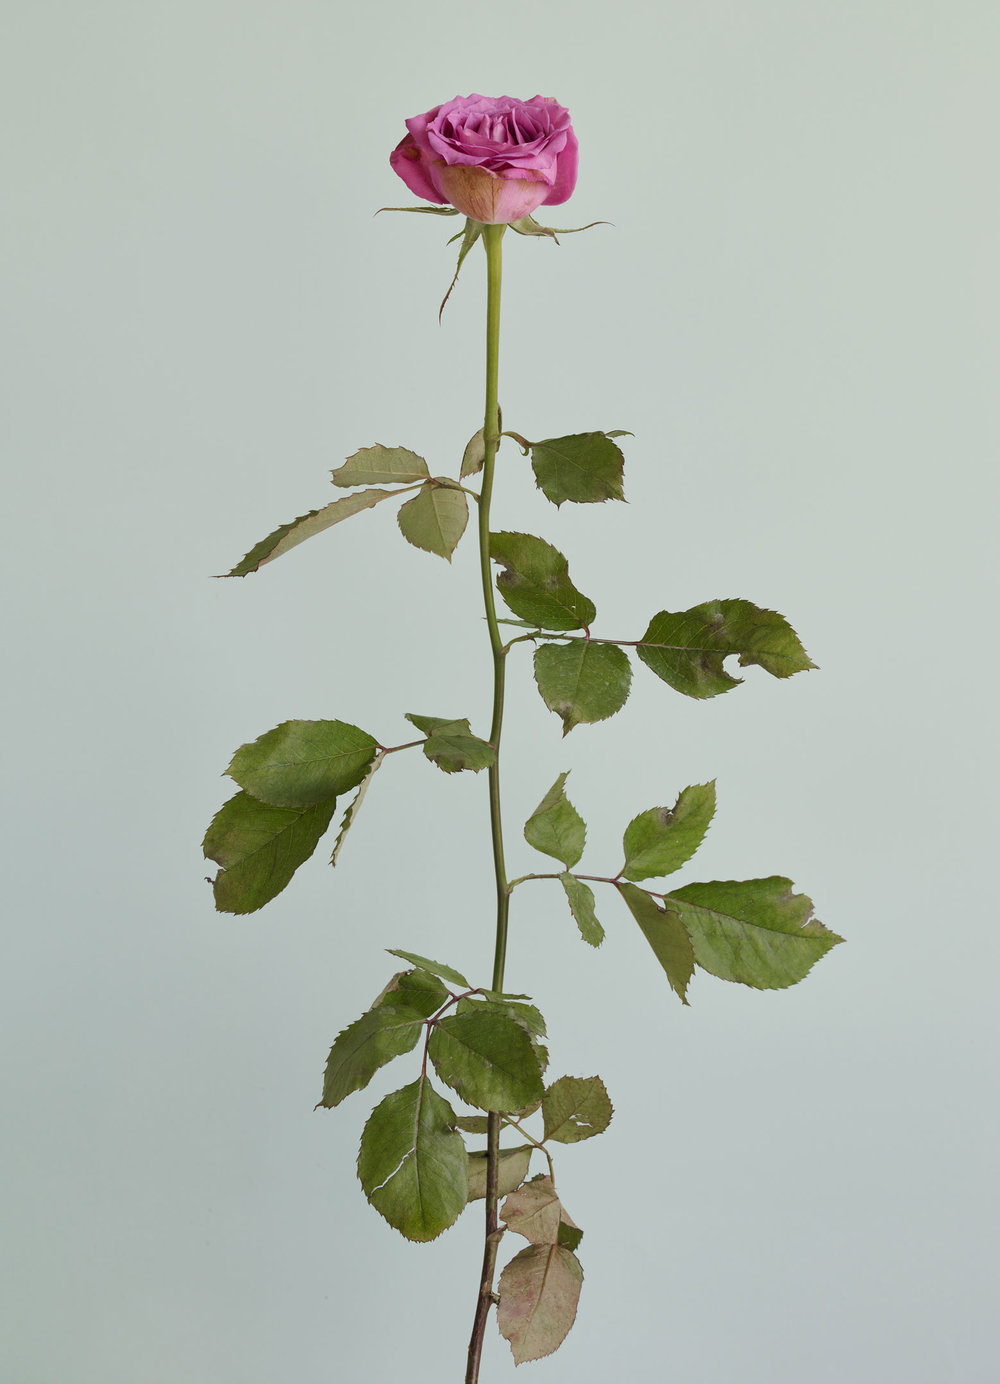 Chung-Heeseung--Untitled-#12-,-from-the-series-Rose-is-a-rose-is-a-rose.jpg